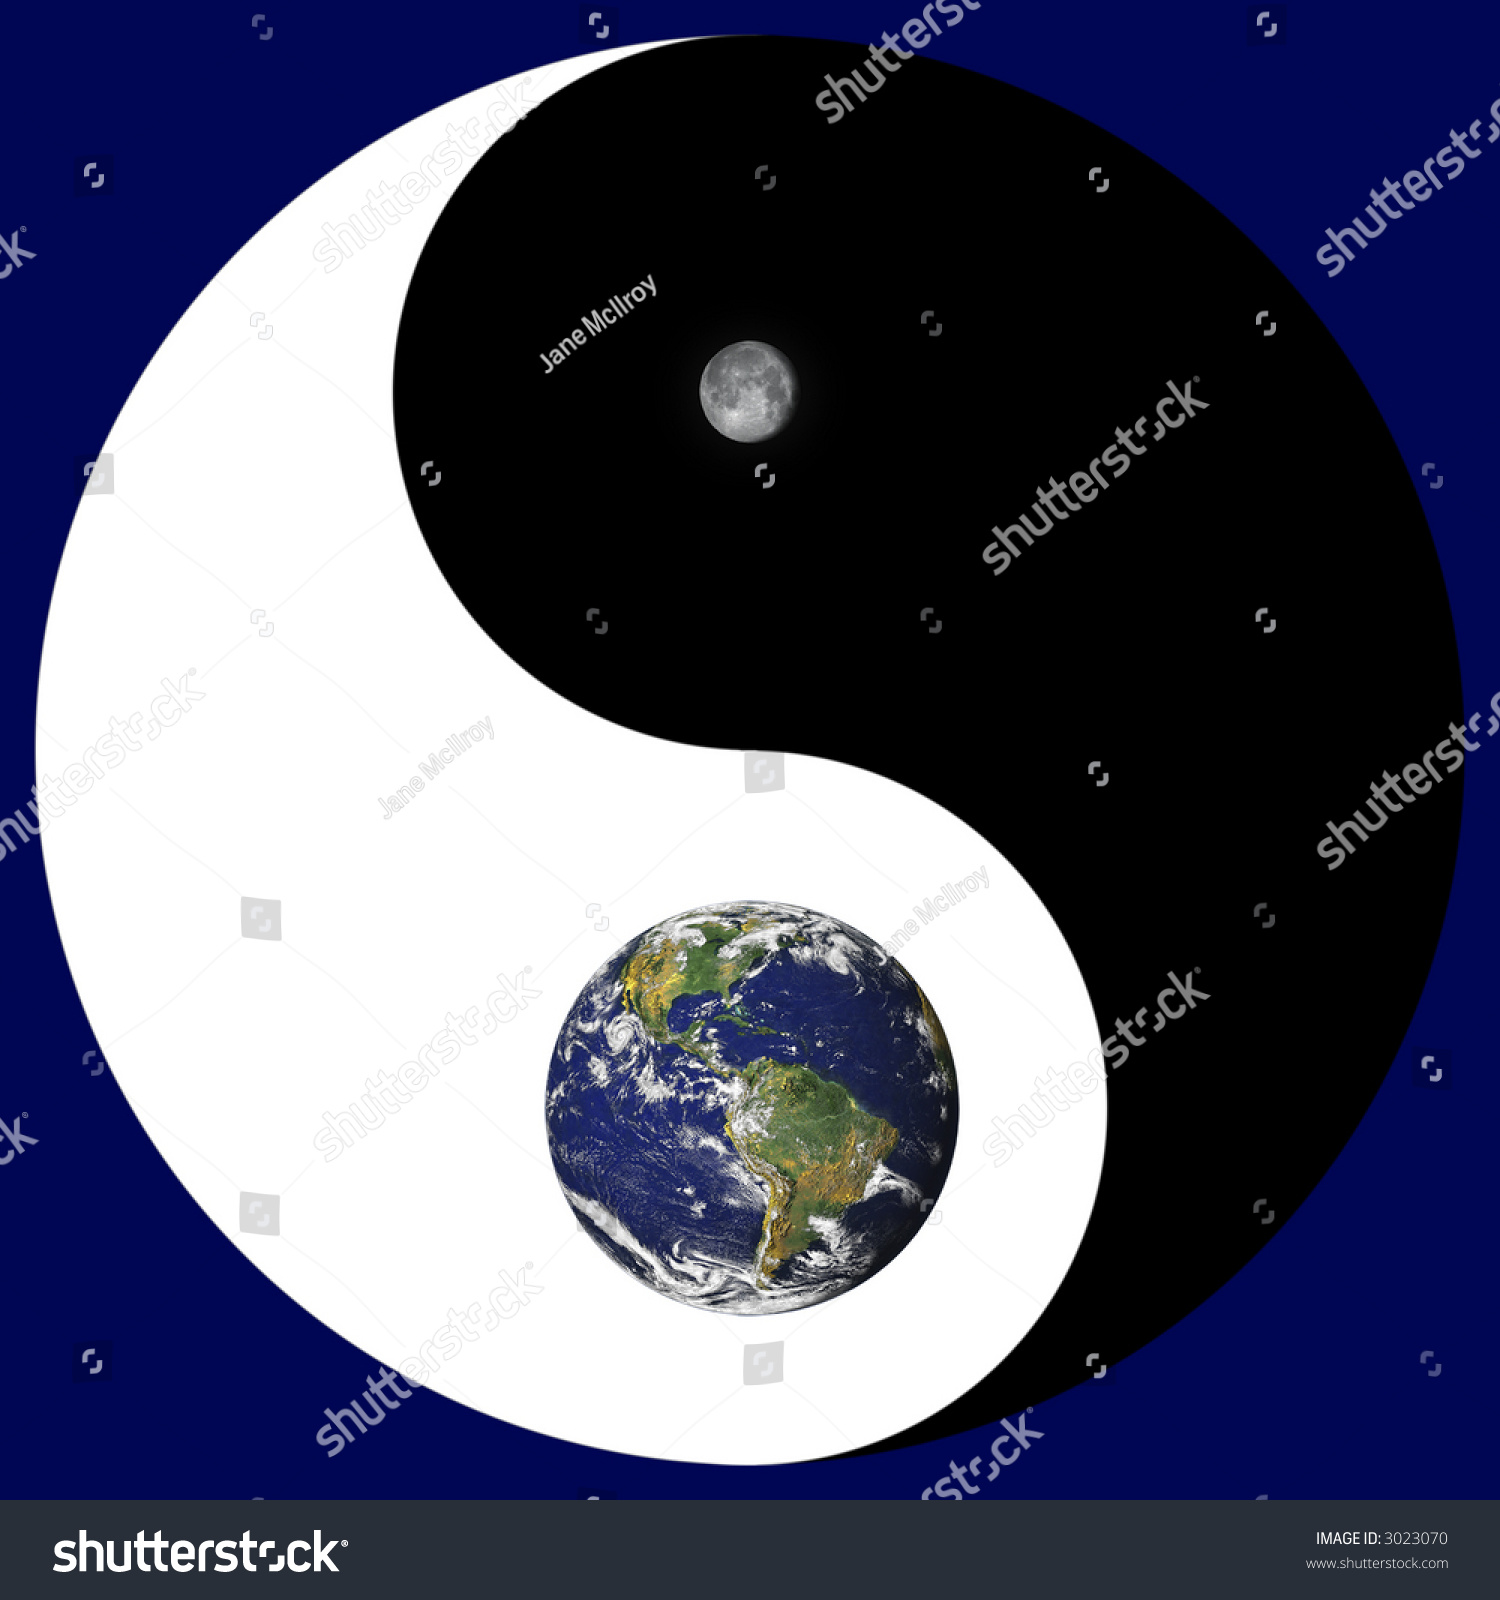 Ancient Symbol Yin Yang Combined Nasa Stock Illustration 3023070 Electric Barbed Wire Free Photo Public Domain Pictures Of And With Images Earth Moon